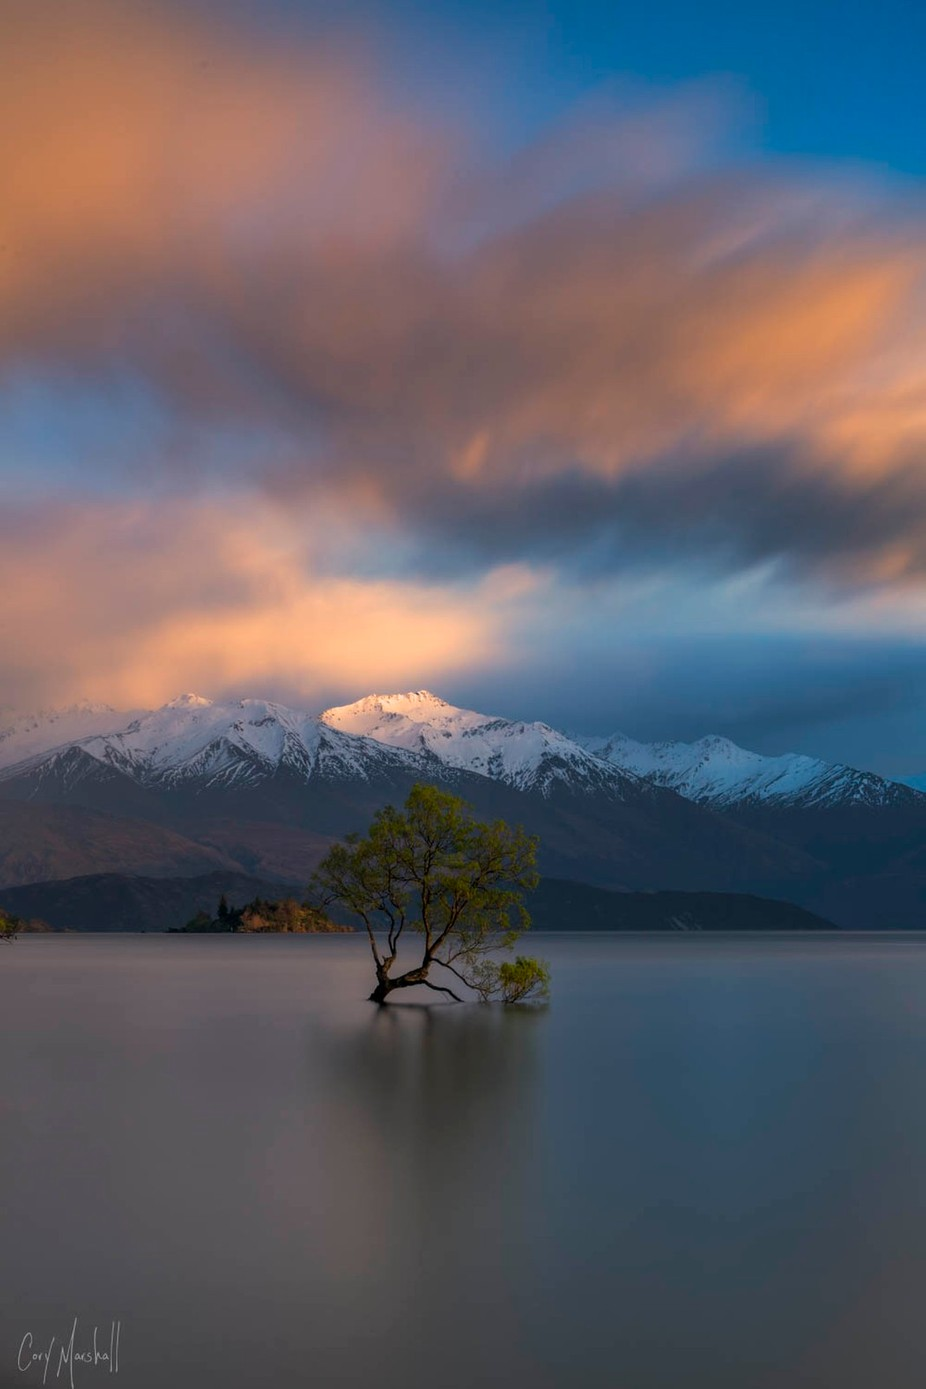 Wanaka Tree by corymarshall - Image Of The Month Photo Contest Vol 27